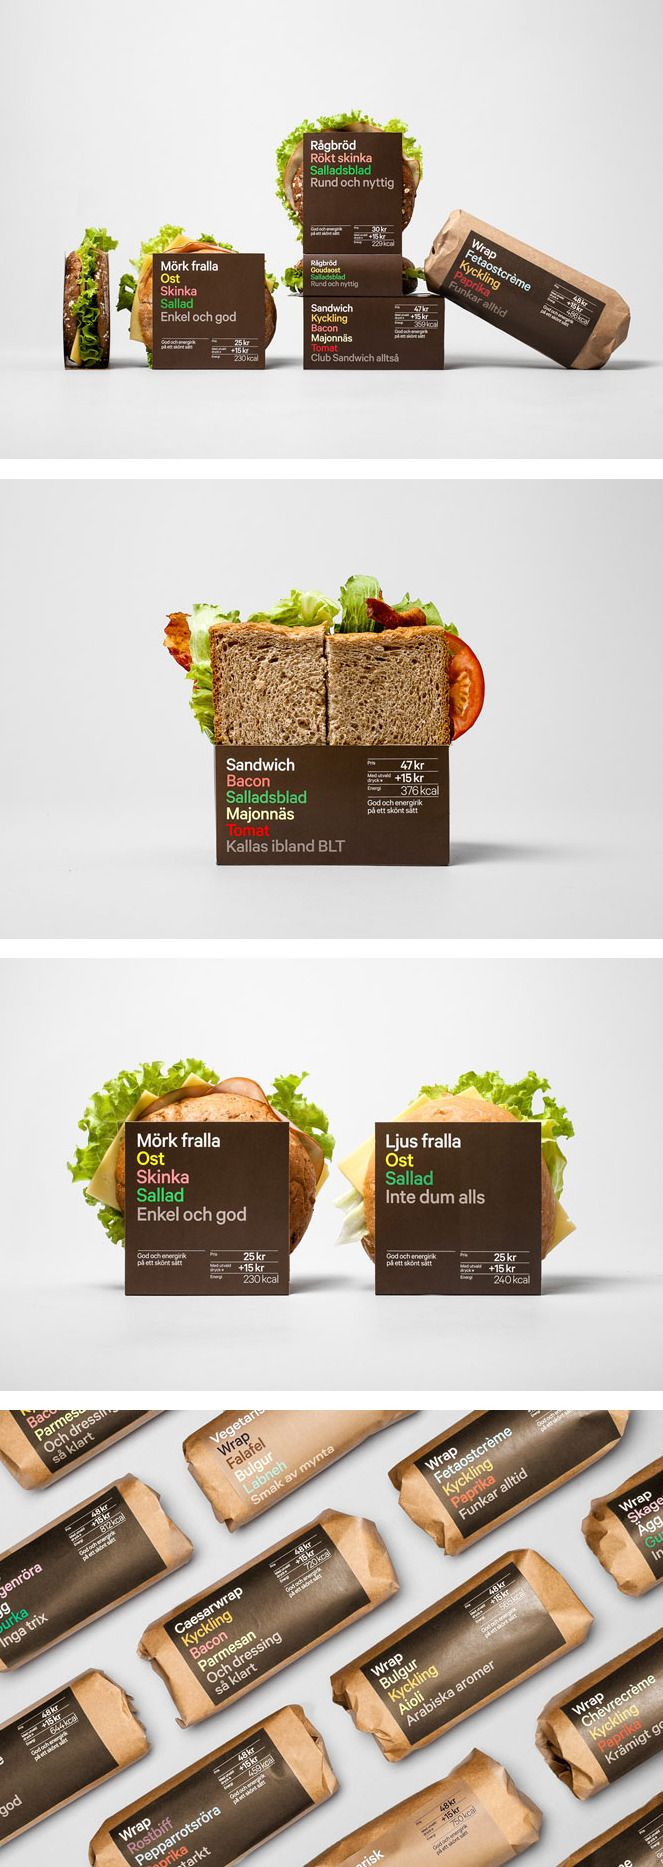 7-Eleven and Press­byrån (Sweden) Enhance their Fast Food Range | By BVD